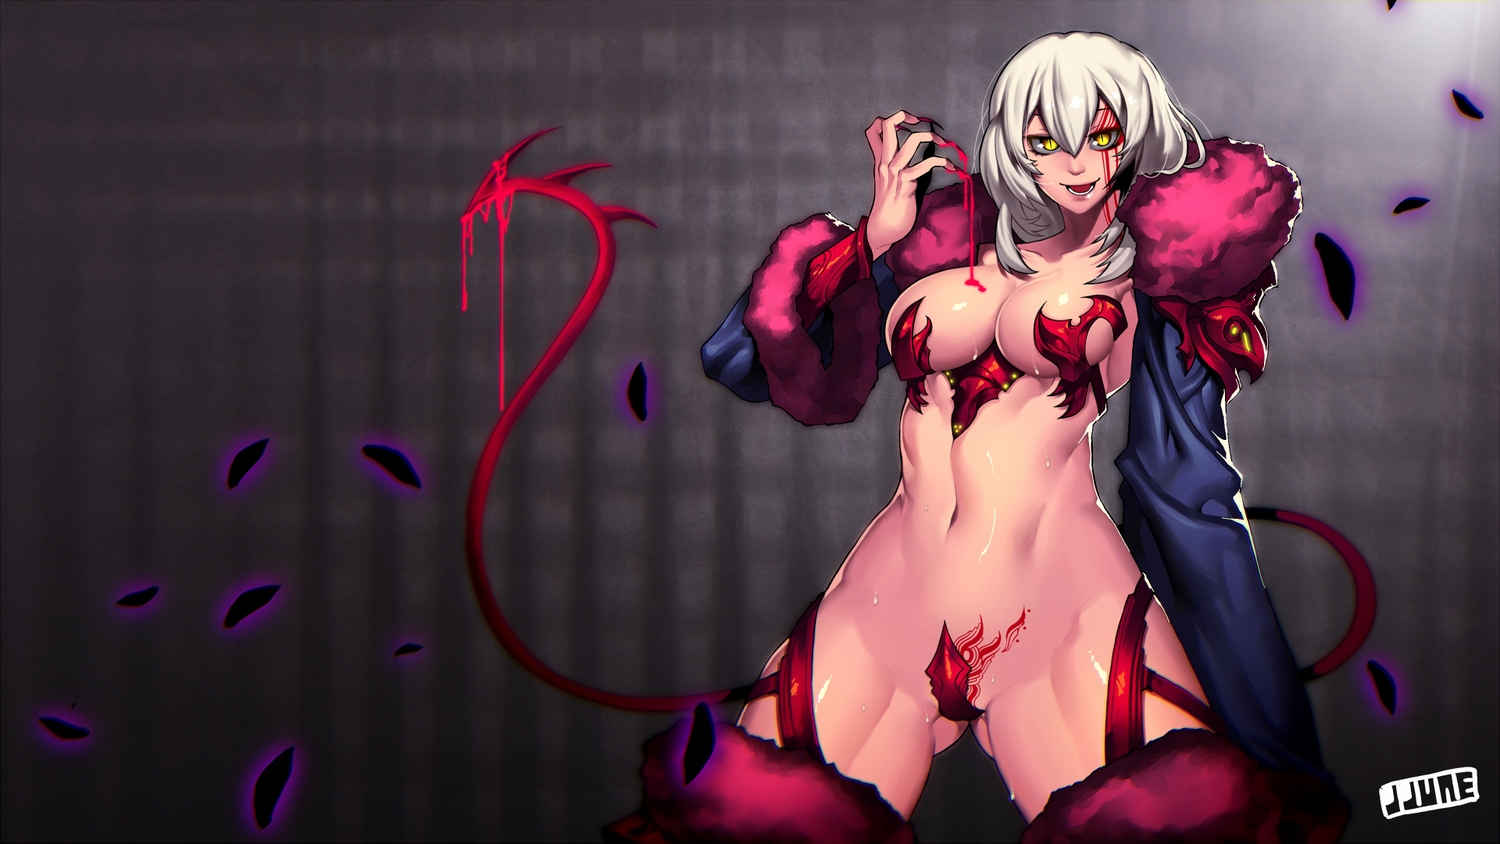 Anime hot nude bad girl with demon  nackt images